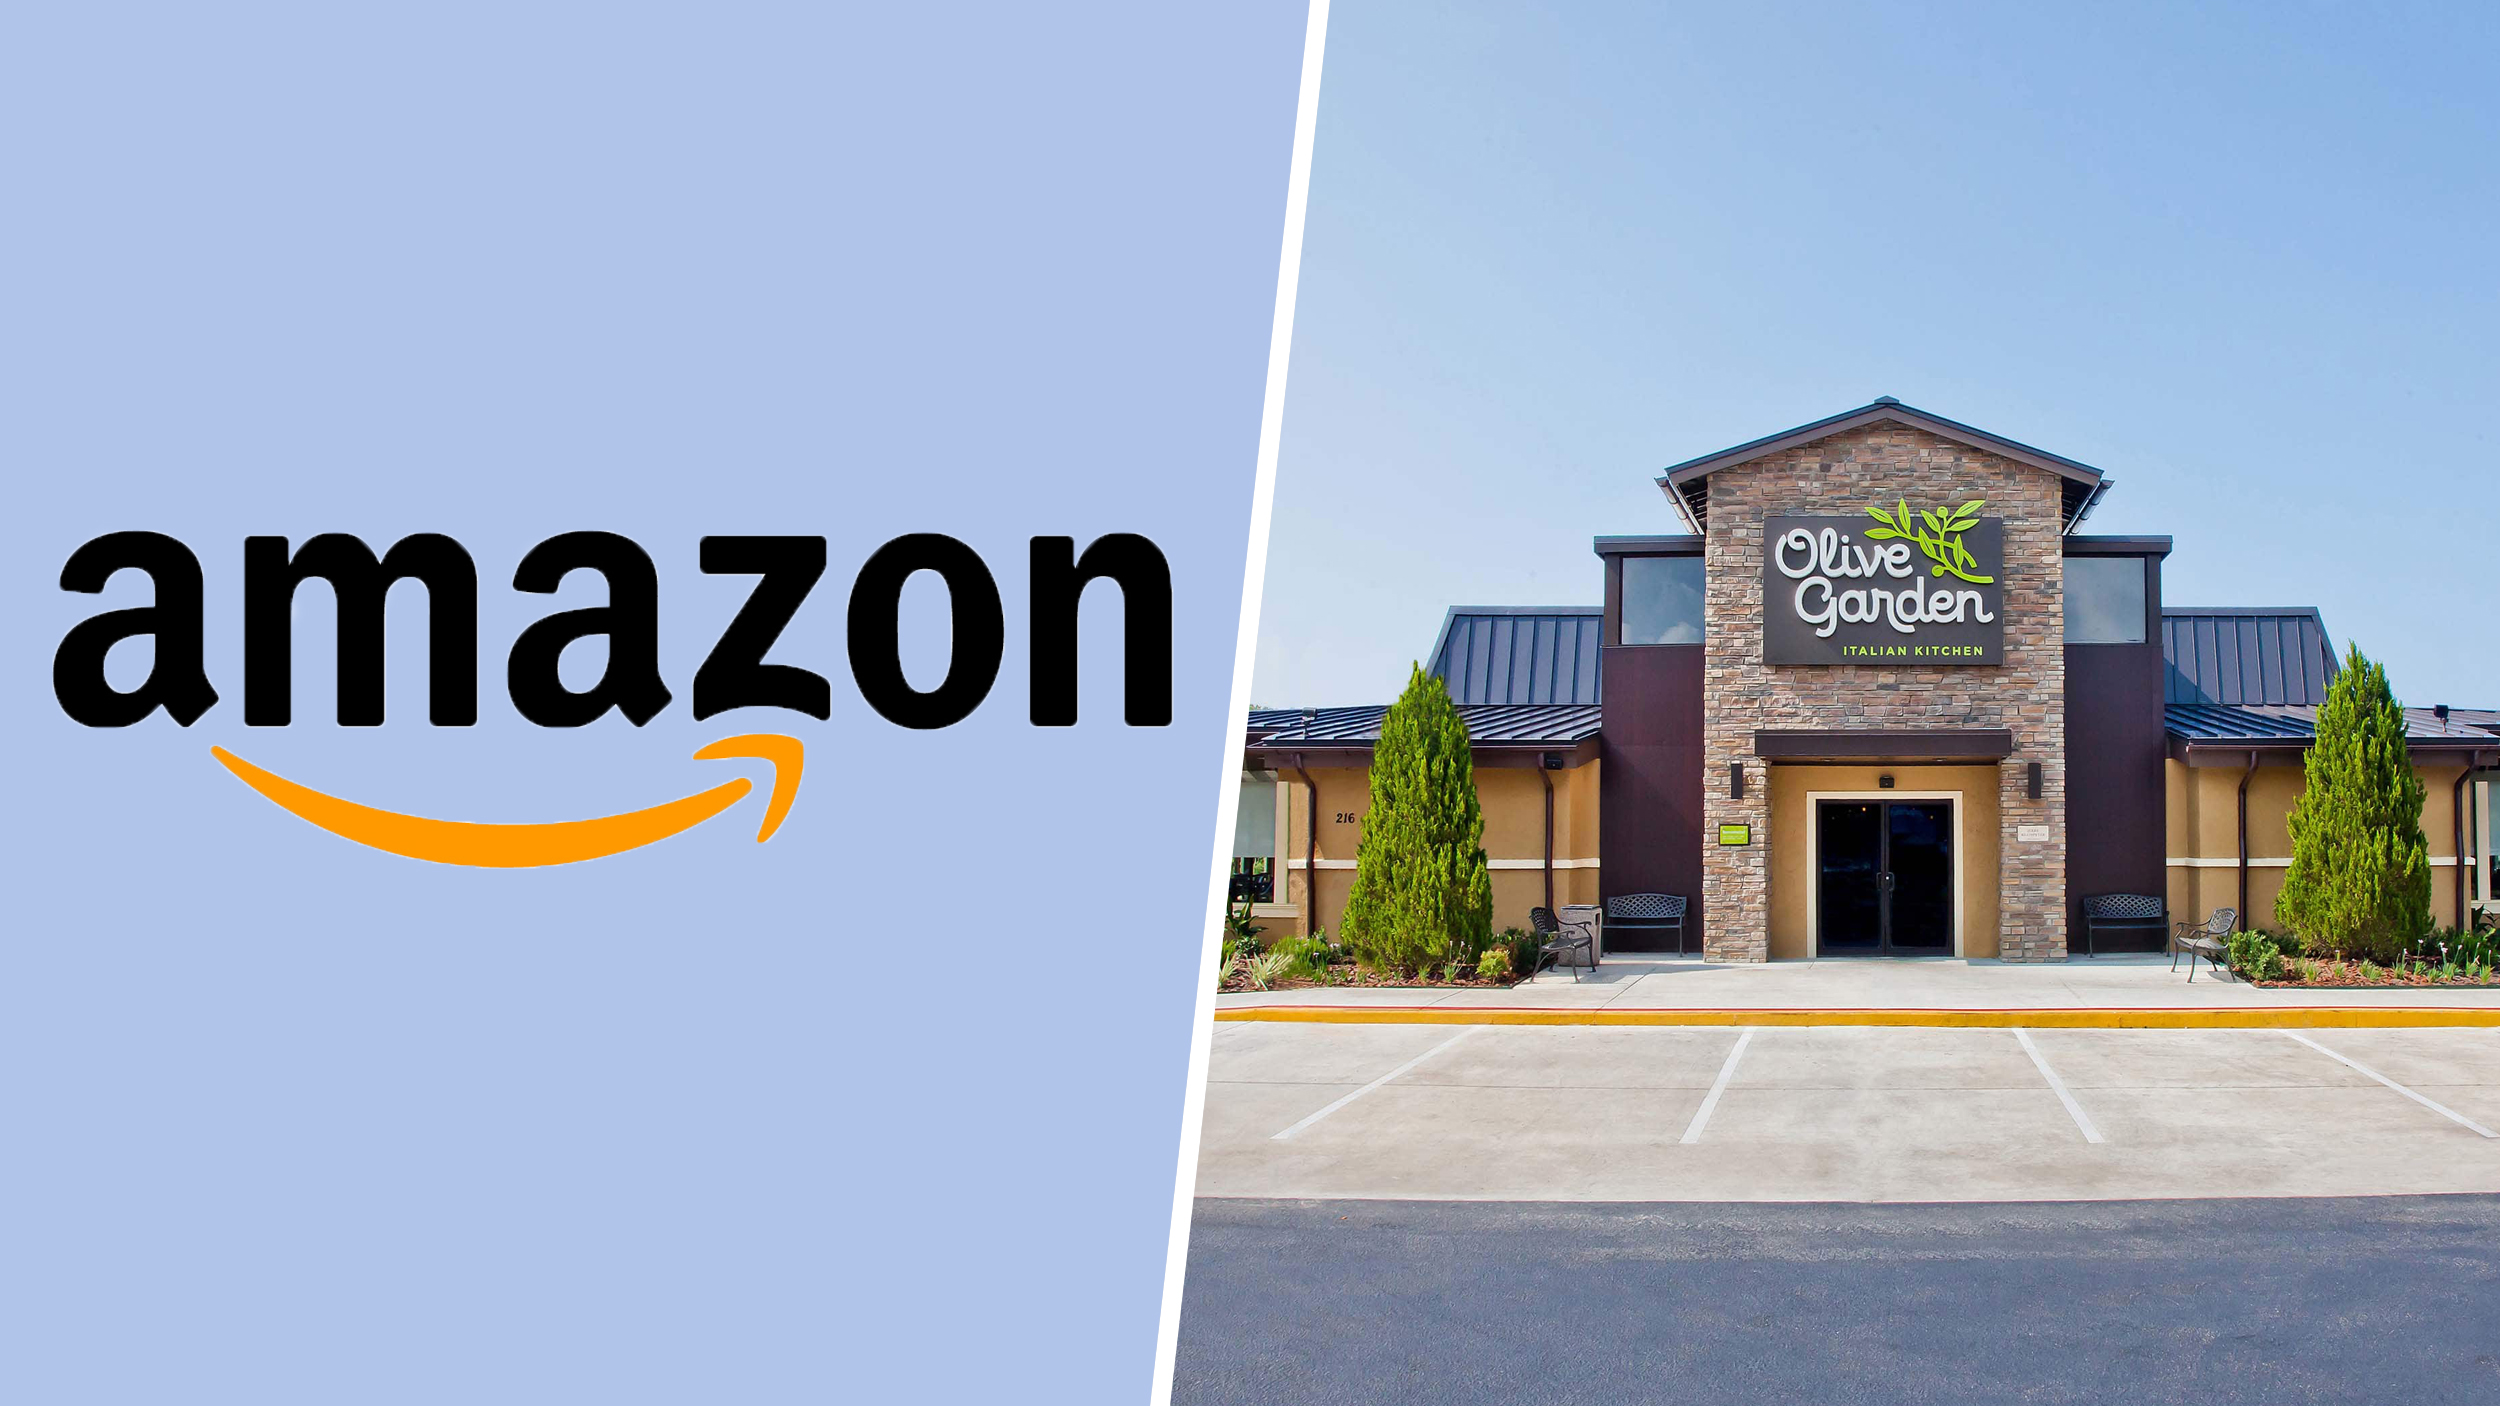 Amazon And Olive Garden Delivery Test In The Works